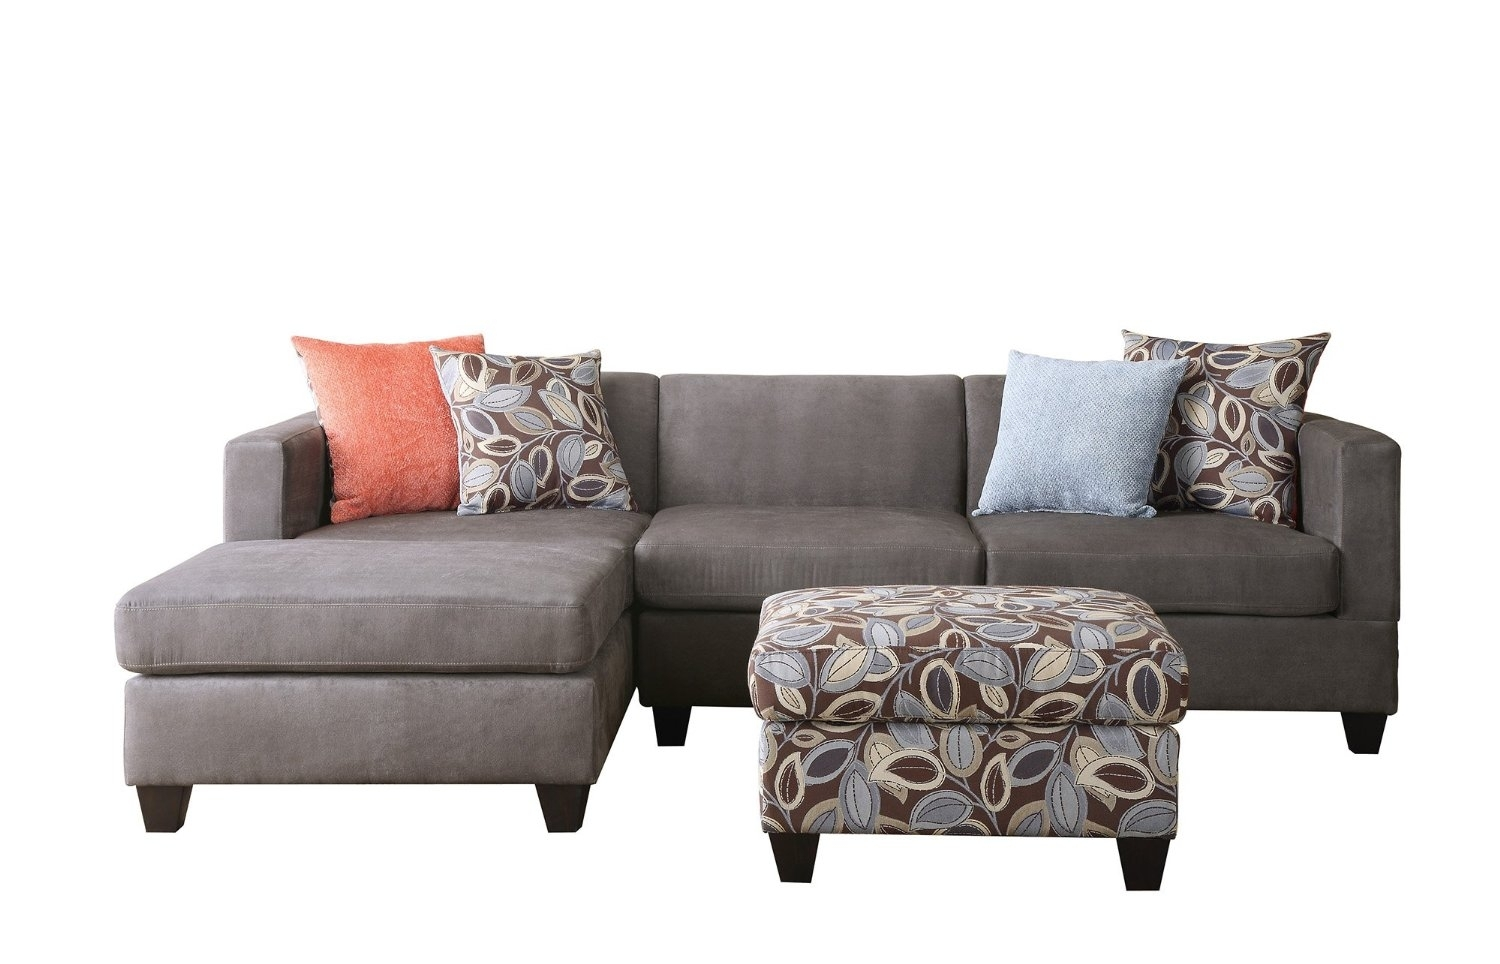 What To Know Before Buying A 3 Piece Sectional Sofa - Elites Home Decor within Cosmos Grey 2 Piece Sectionals With Laf Chaise (Image 28 of 30)